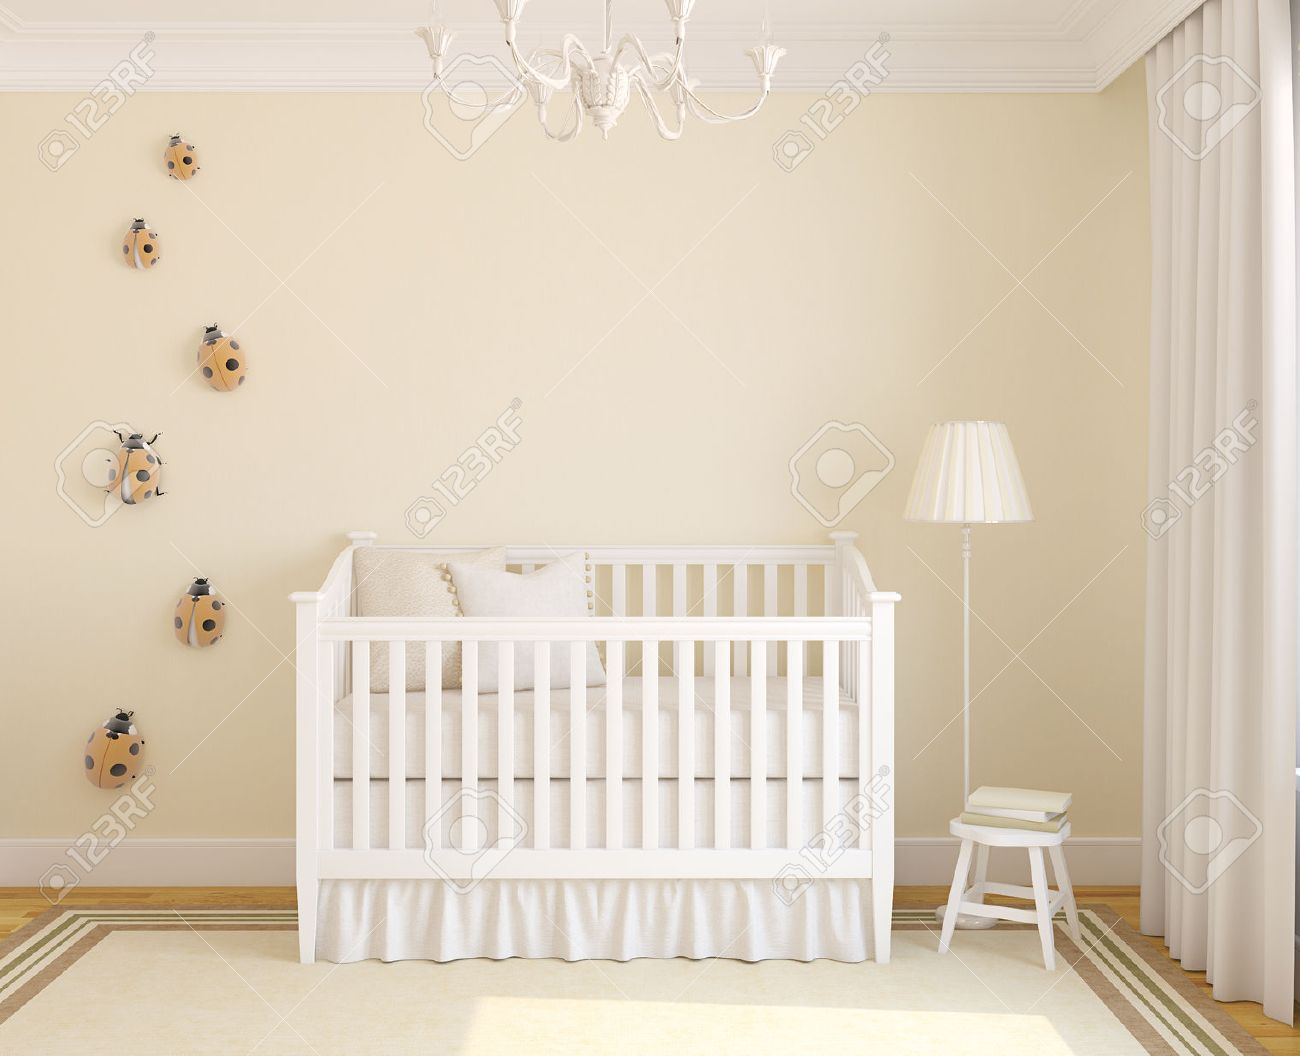 Iinterior of nursery with crib. Frontal view. 3d render. - 50220630